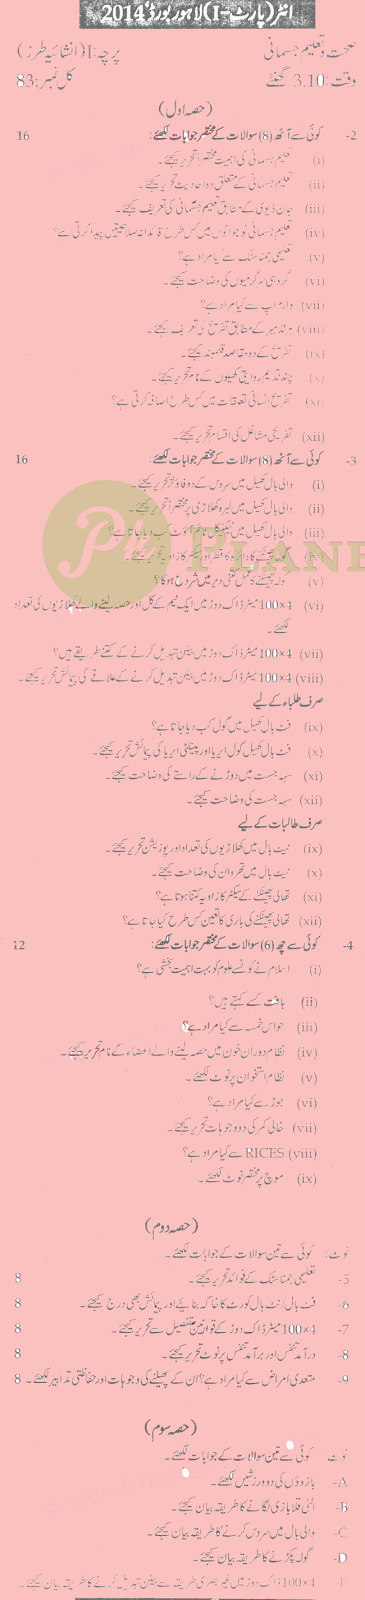 Intermediate Part 1 Past Papers Lahore Board Health Education 2014